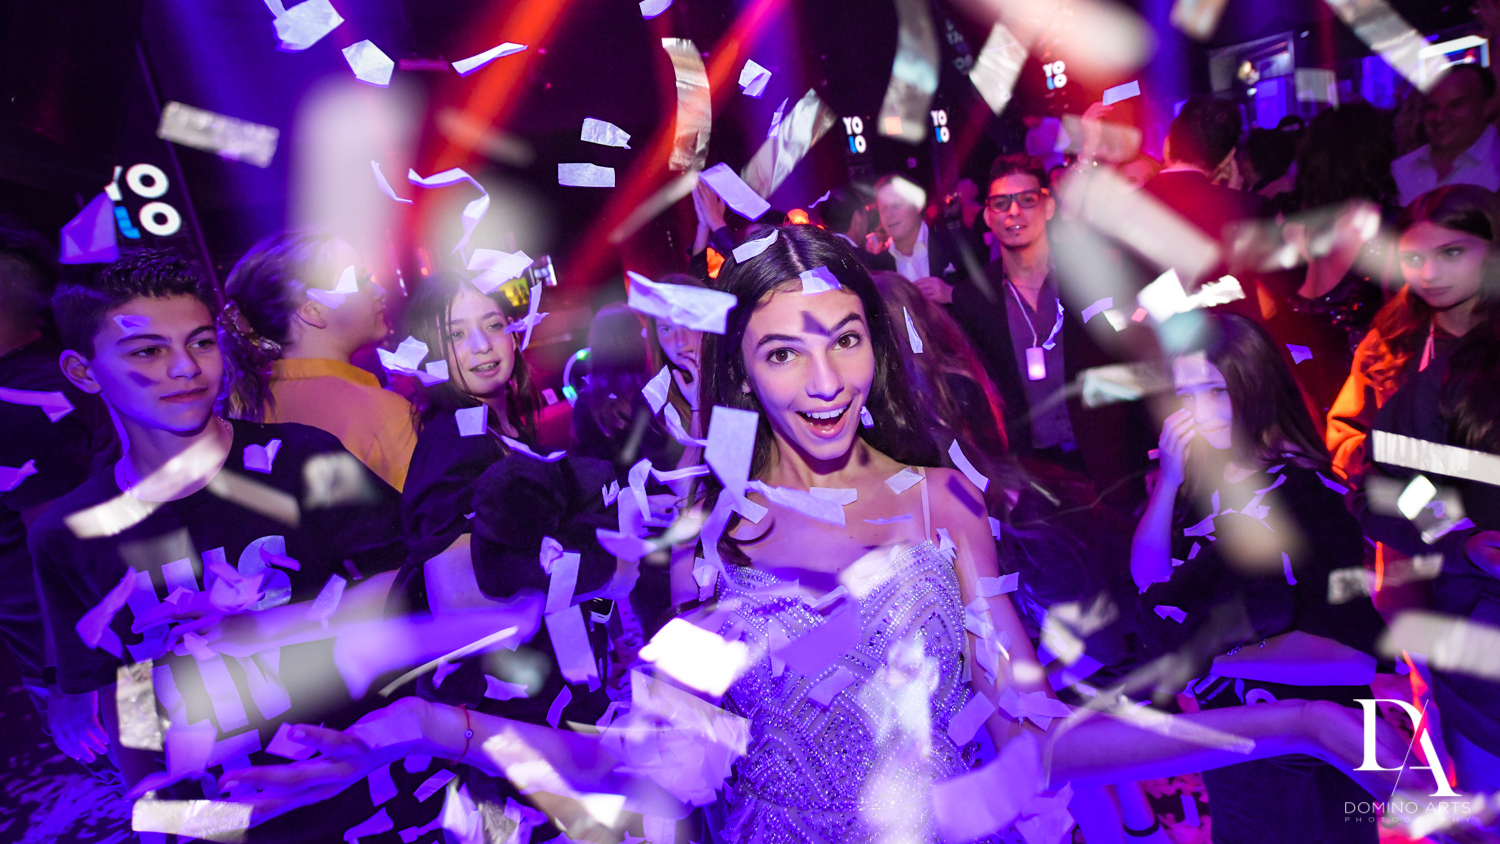 confetti explosion at Nightclub Bat Mitzvah at LIV in Fontainebleau Miami by Domino Arts Photography